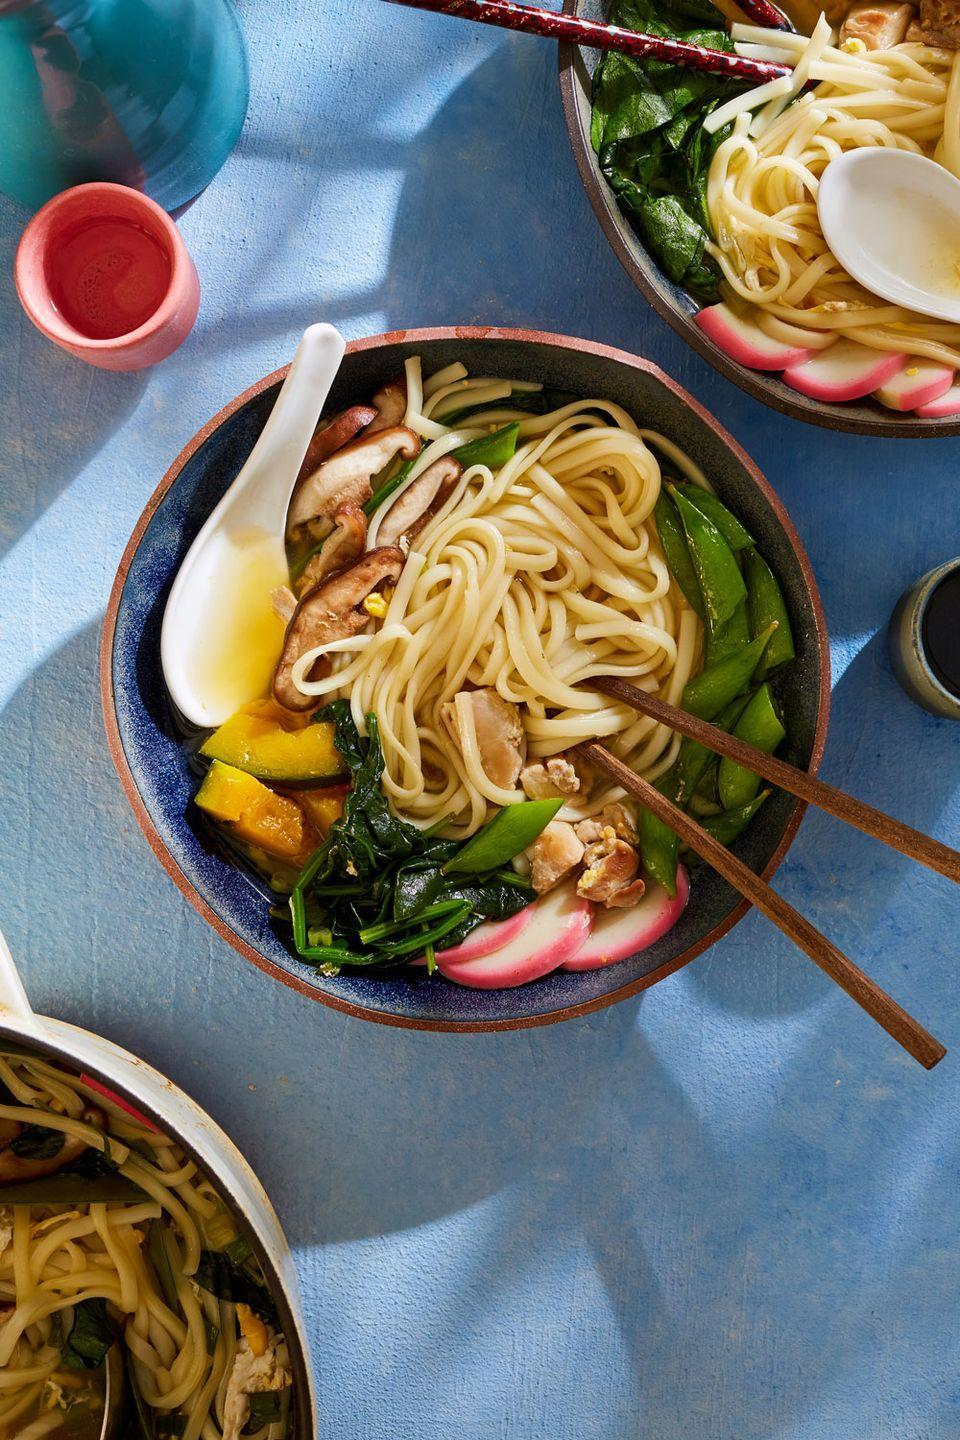 """<p>We love dishes high in flavor, low in commitment. And if it comes together in one pot? All in! Nabeyaki udon is a one-pot Japanese noodle soup that is just this.</p><p>Get the recipe from <a href=""""https://www.delish.com/cooking/recipe-ideas/a35047520/nabeyaki-udon-recipe/"""" rel=""""nofollow noopener"""" target=""""_blank"""" data-ylk=""""slk:Delish"""" class=""""link rapid-noclick-resp"""">Delish</a>.</p>"""